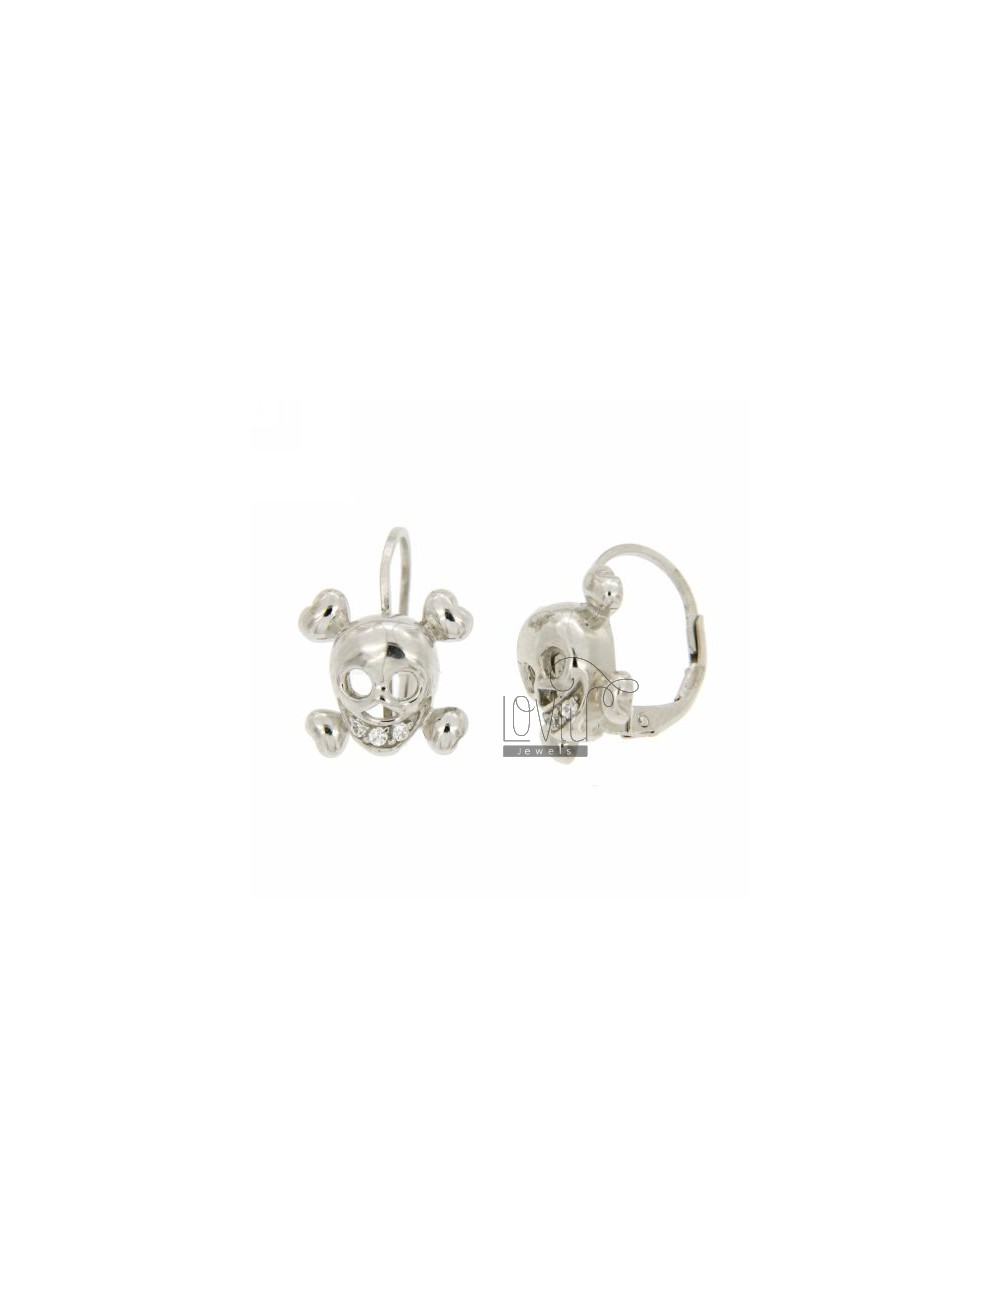 EARRINGS SKULL IN A nun AG RHODIUM 925 ‰ TIT AND ZIRCONIA